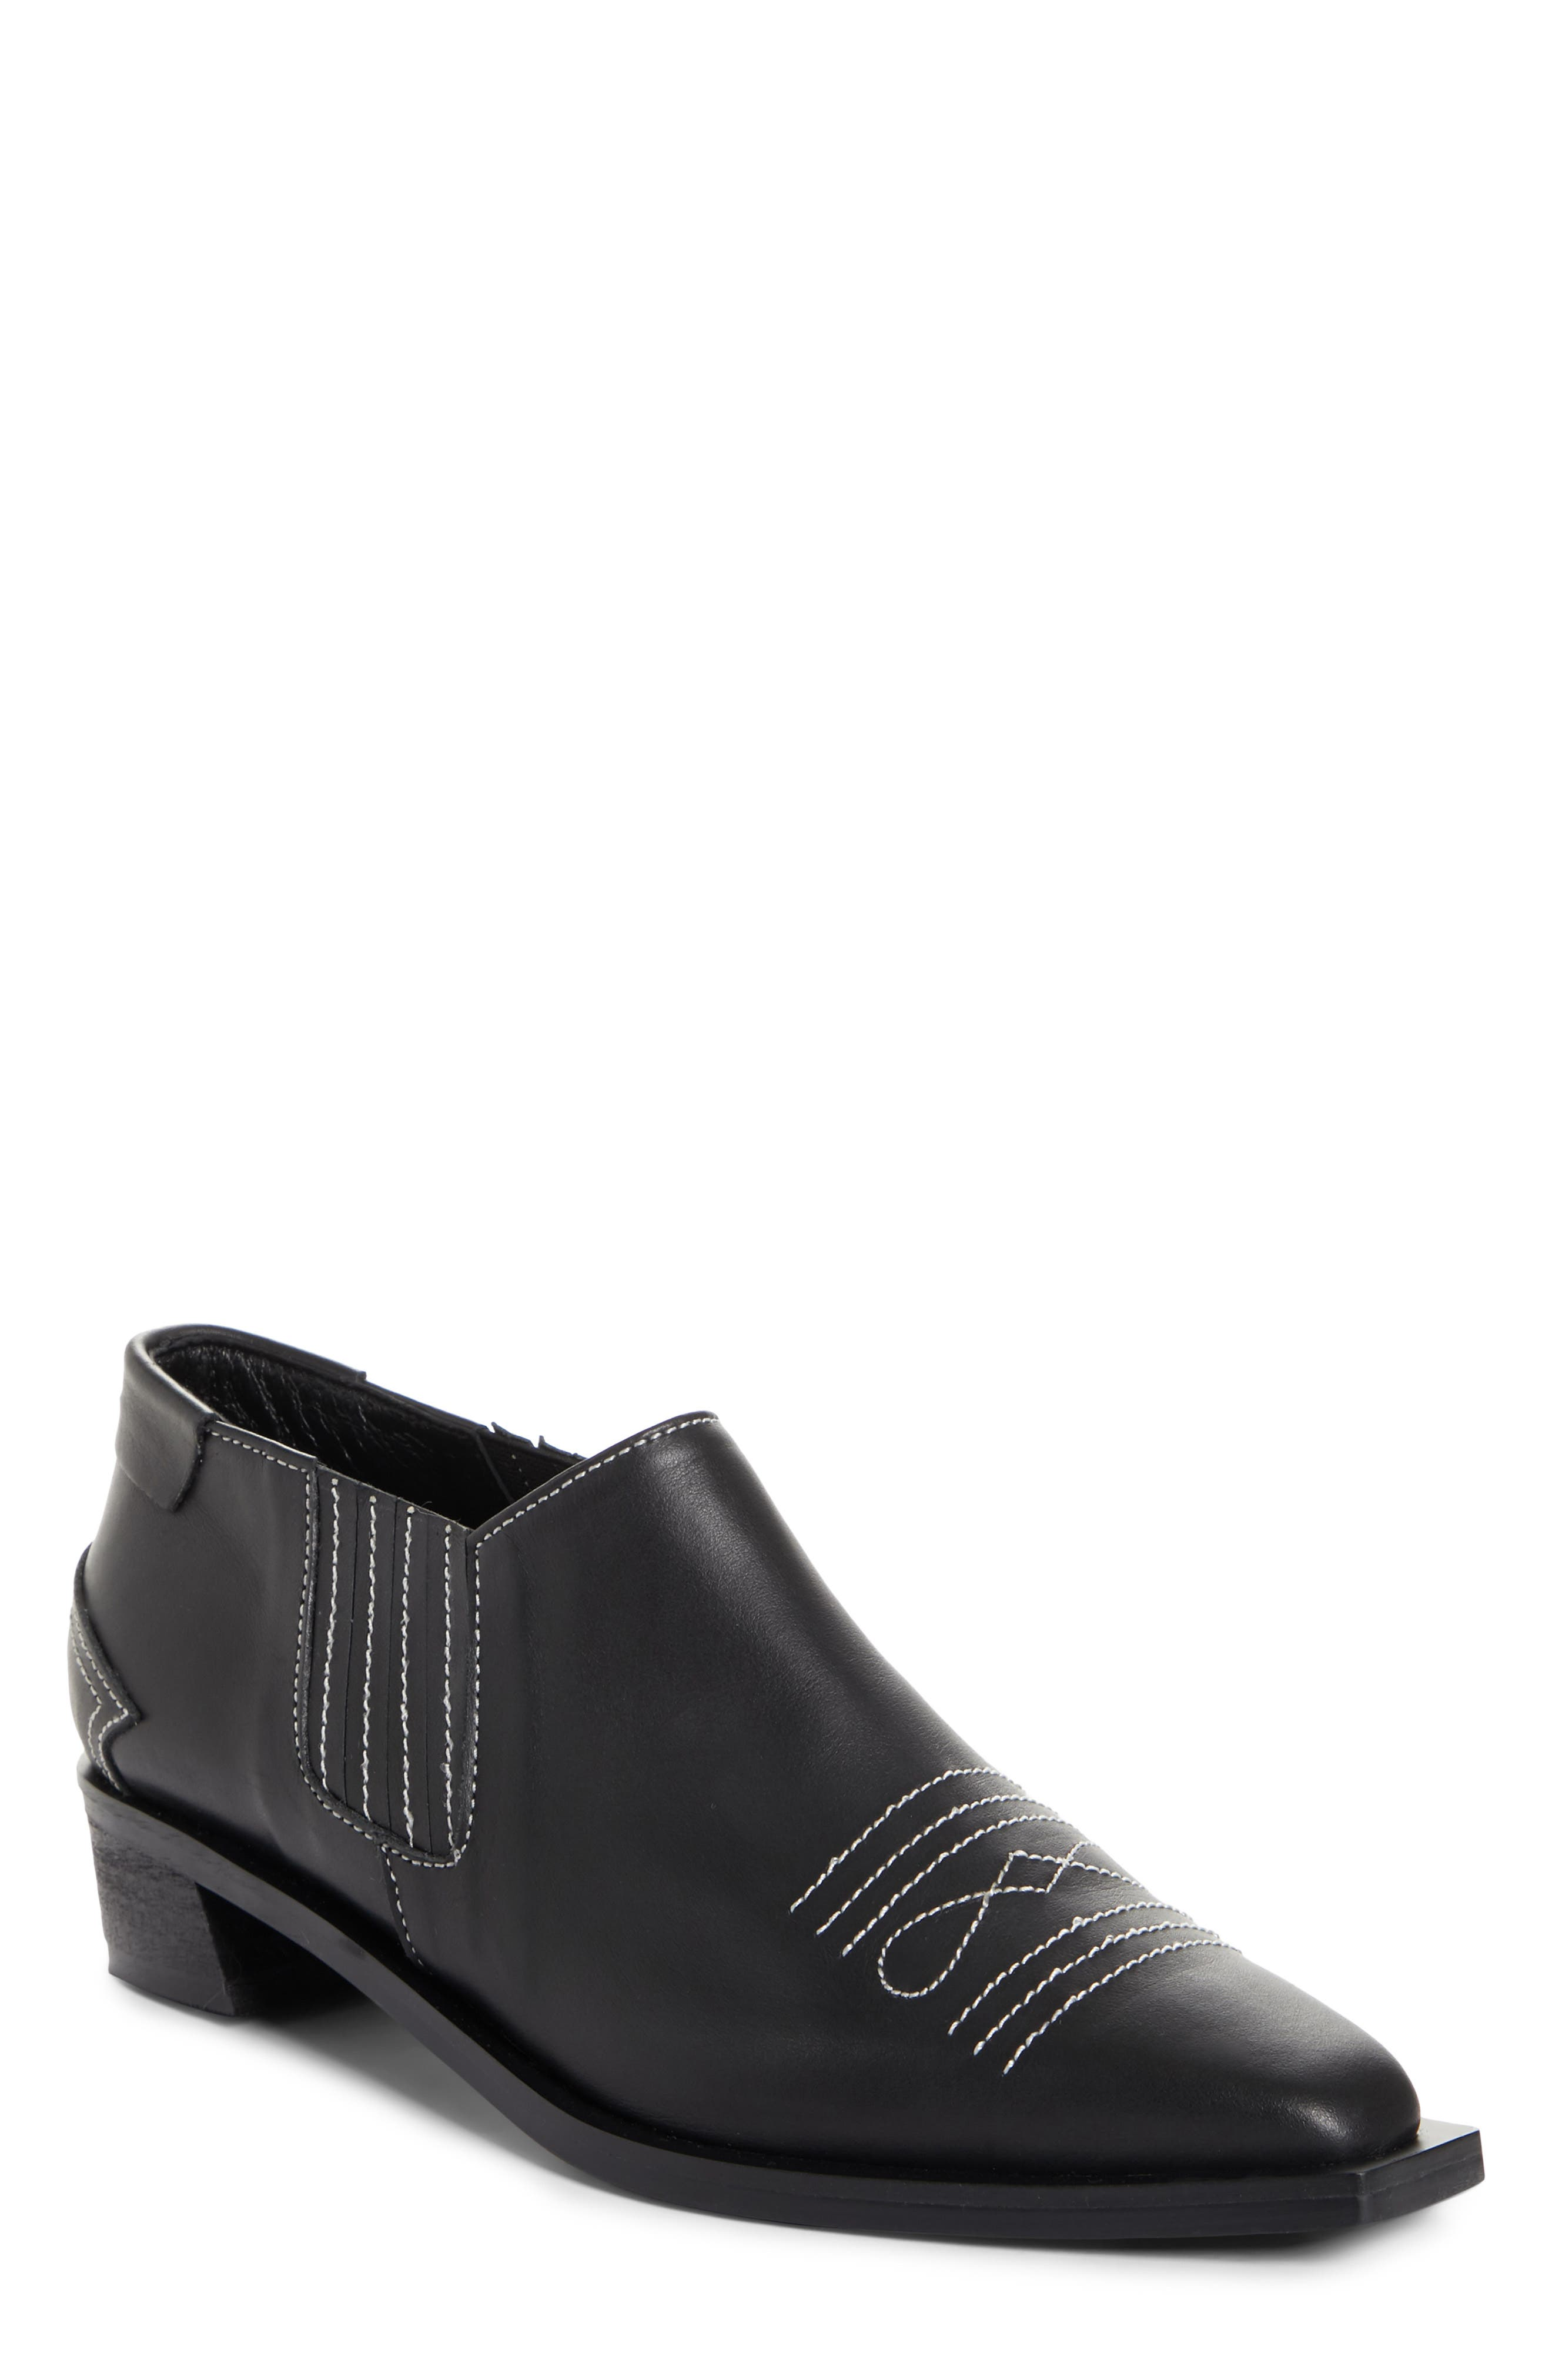 Western Loafer,                             Main thumbnail 1, color,                             BLACK